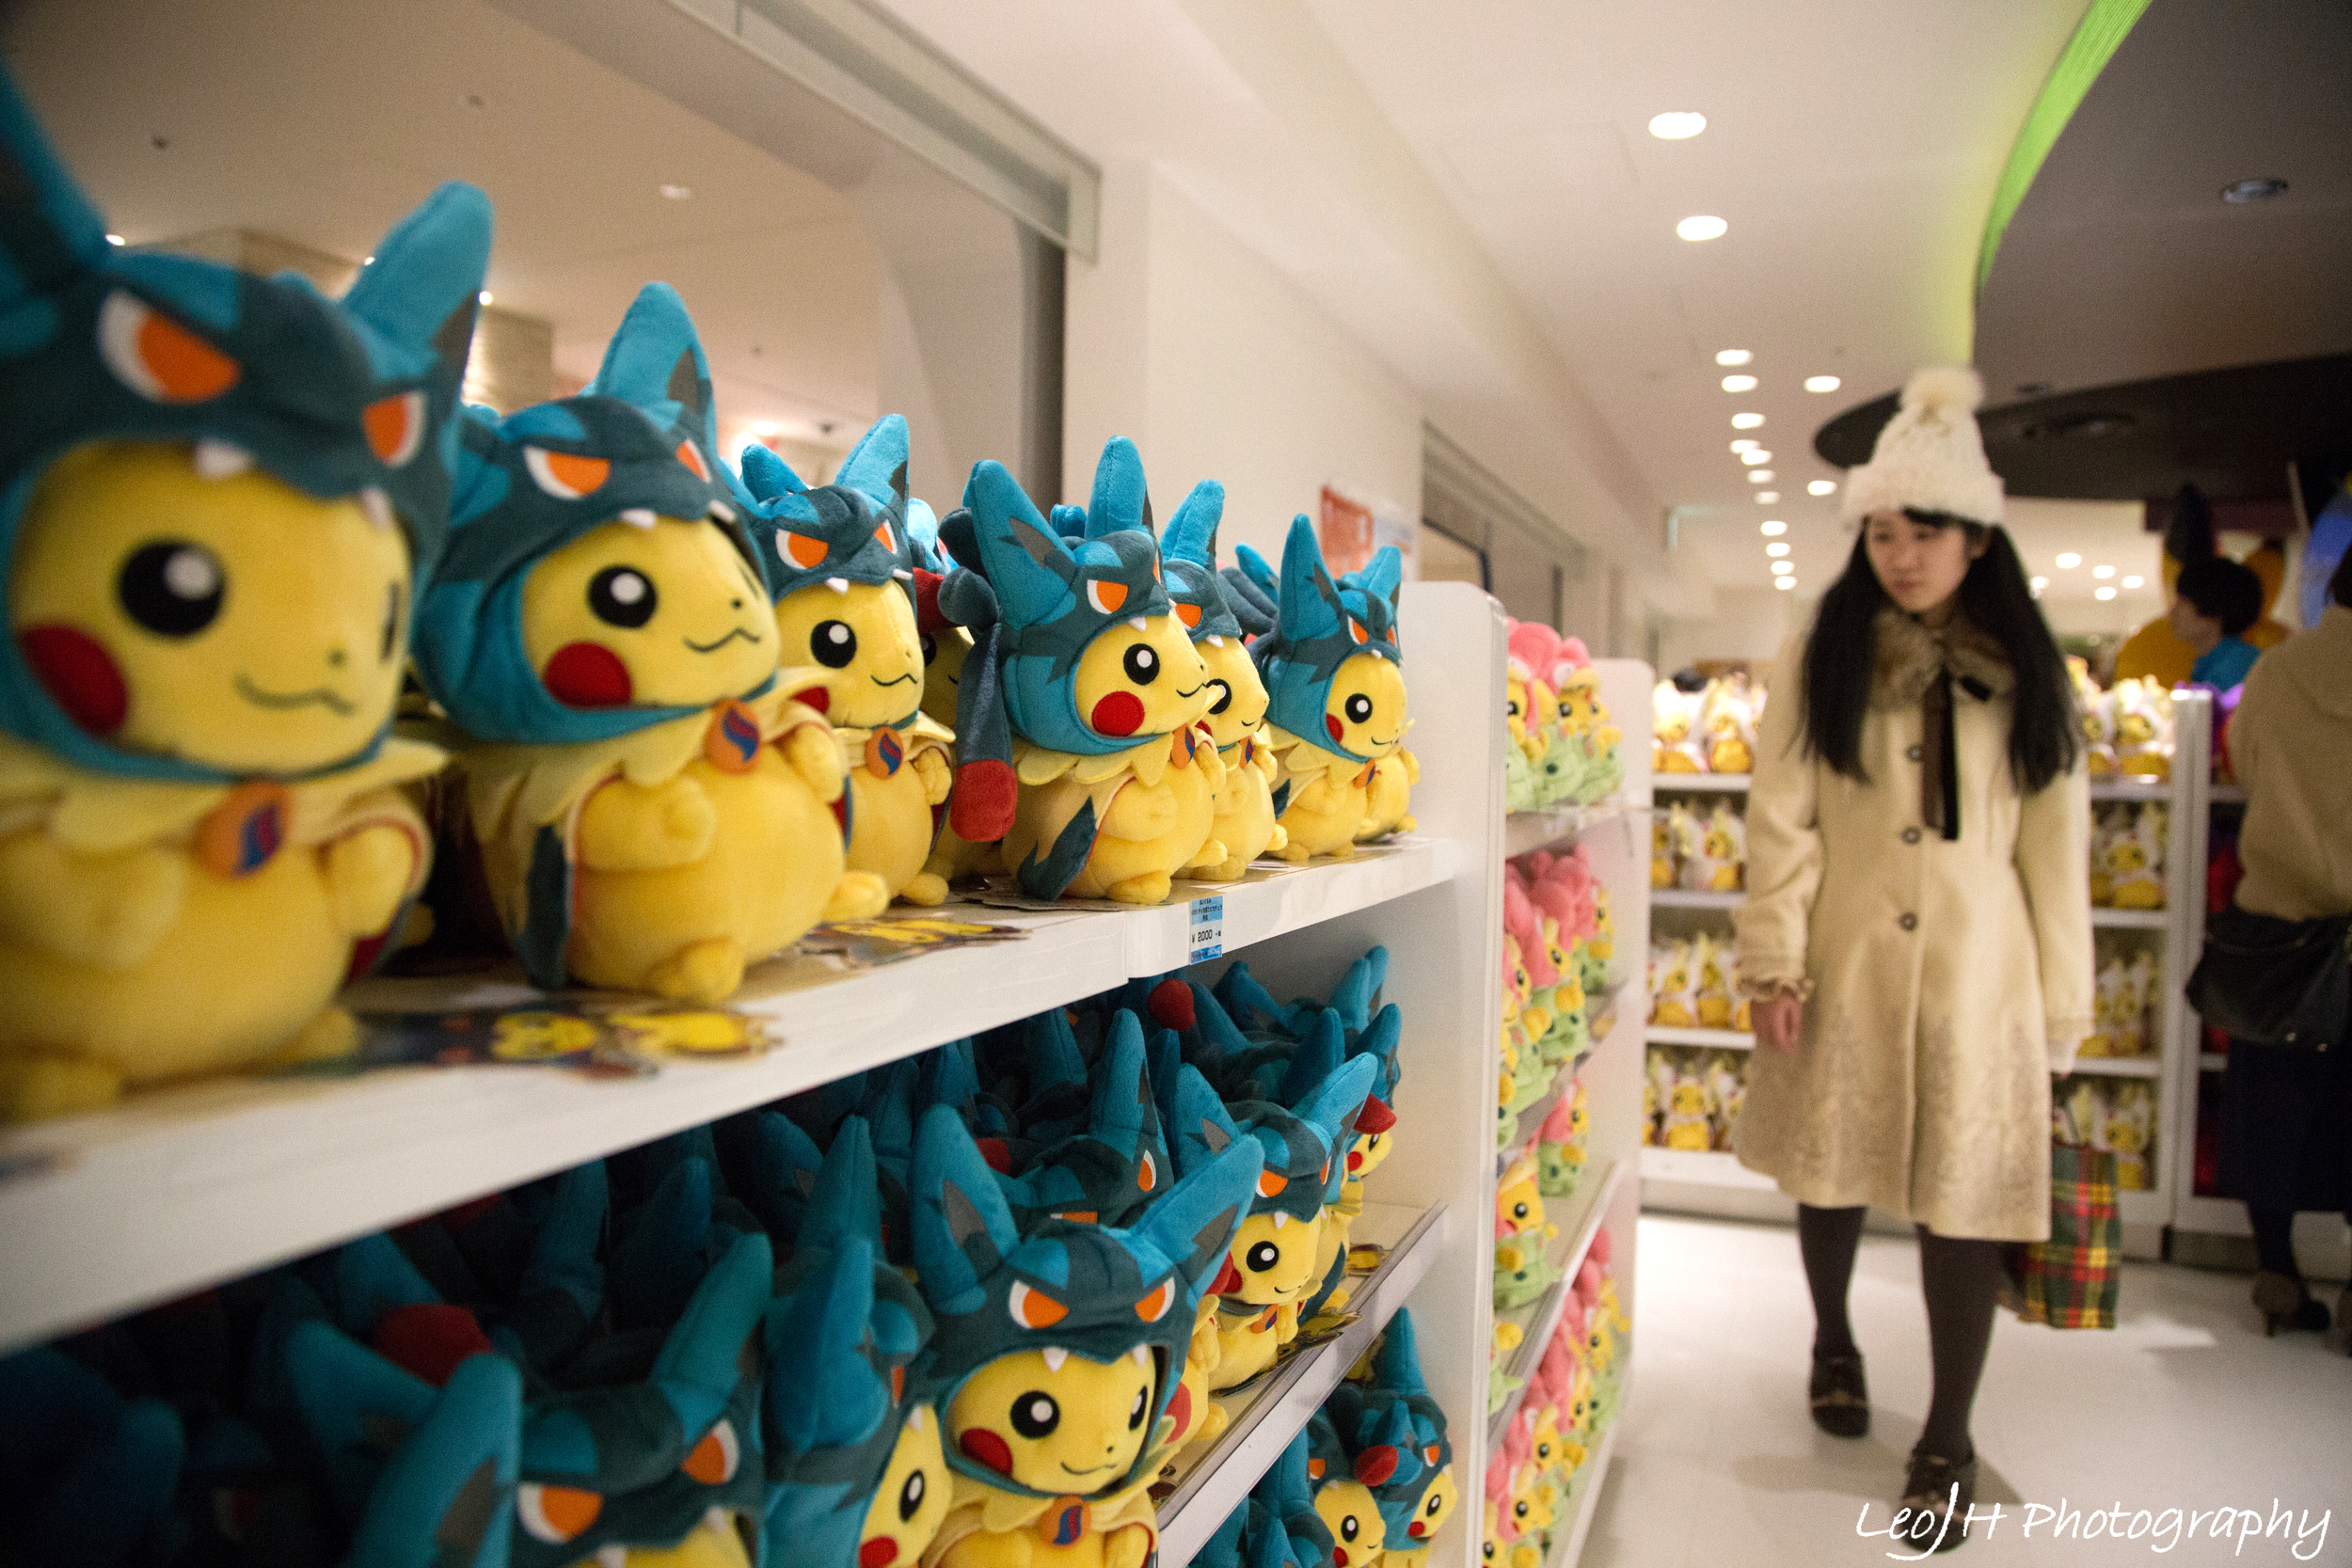 Loads and loads and loads of Pokemon merchandise on sale